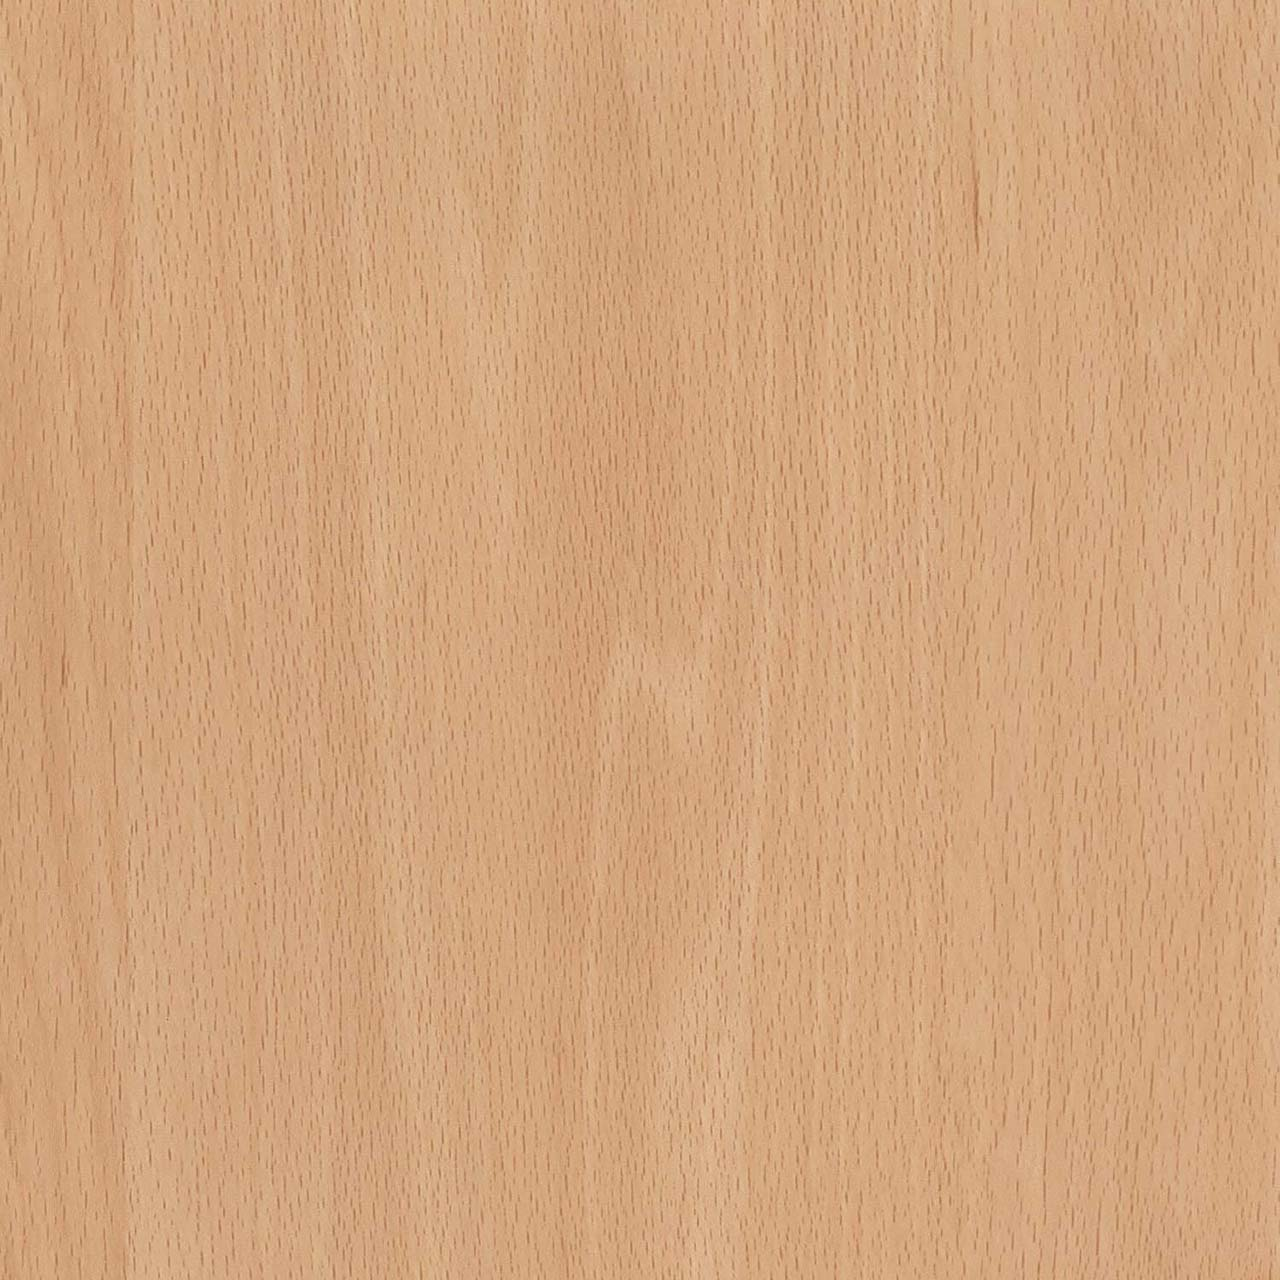 Almarie Beech effect laminate panel